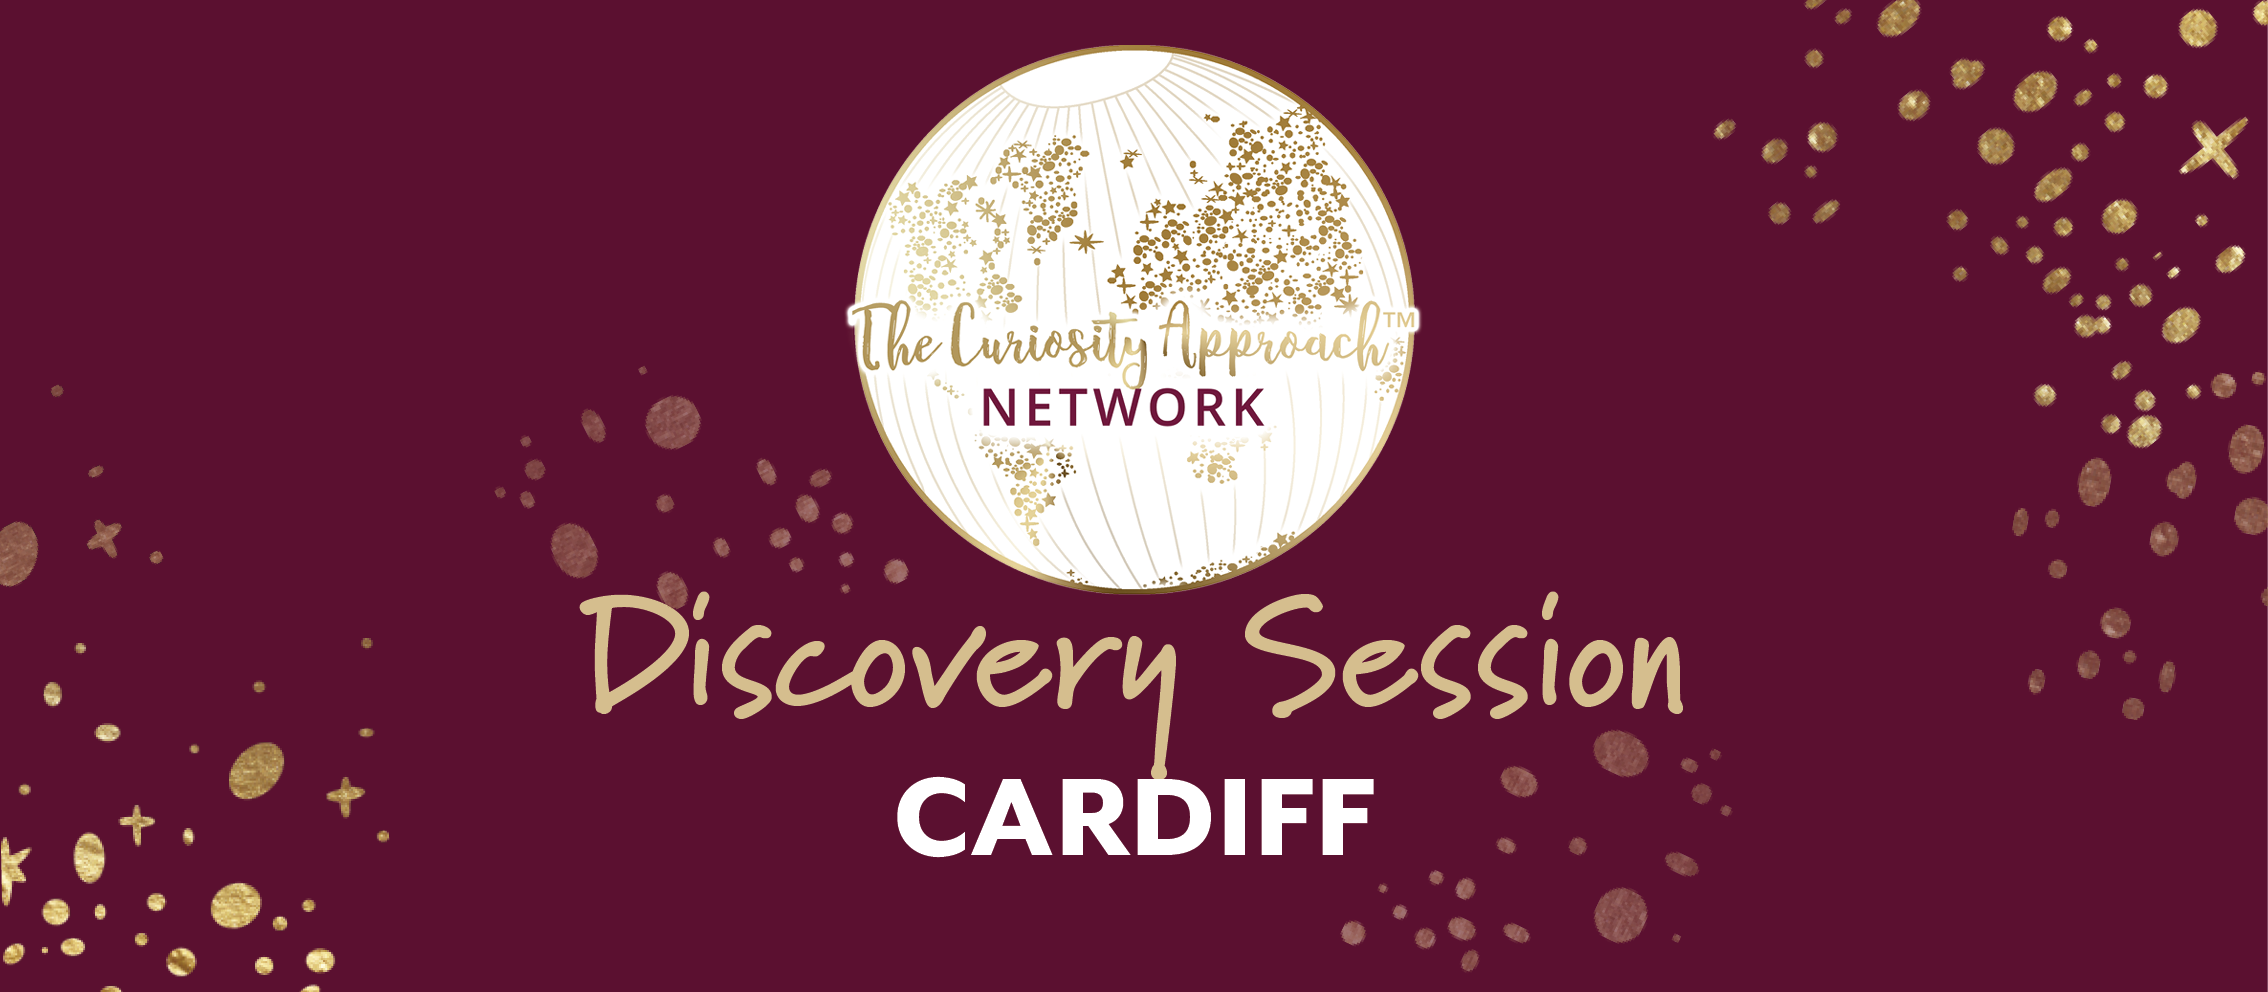 Cardiff Network - Discover Loose Parts - 28/05/2021